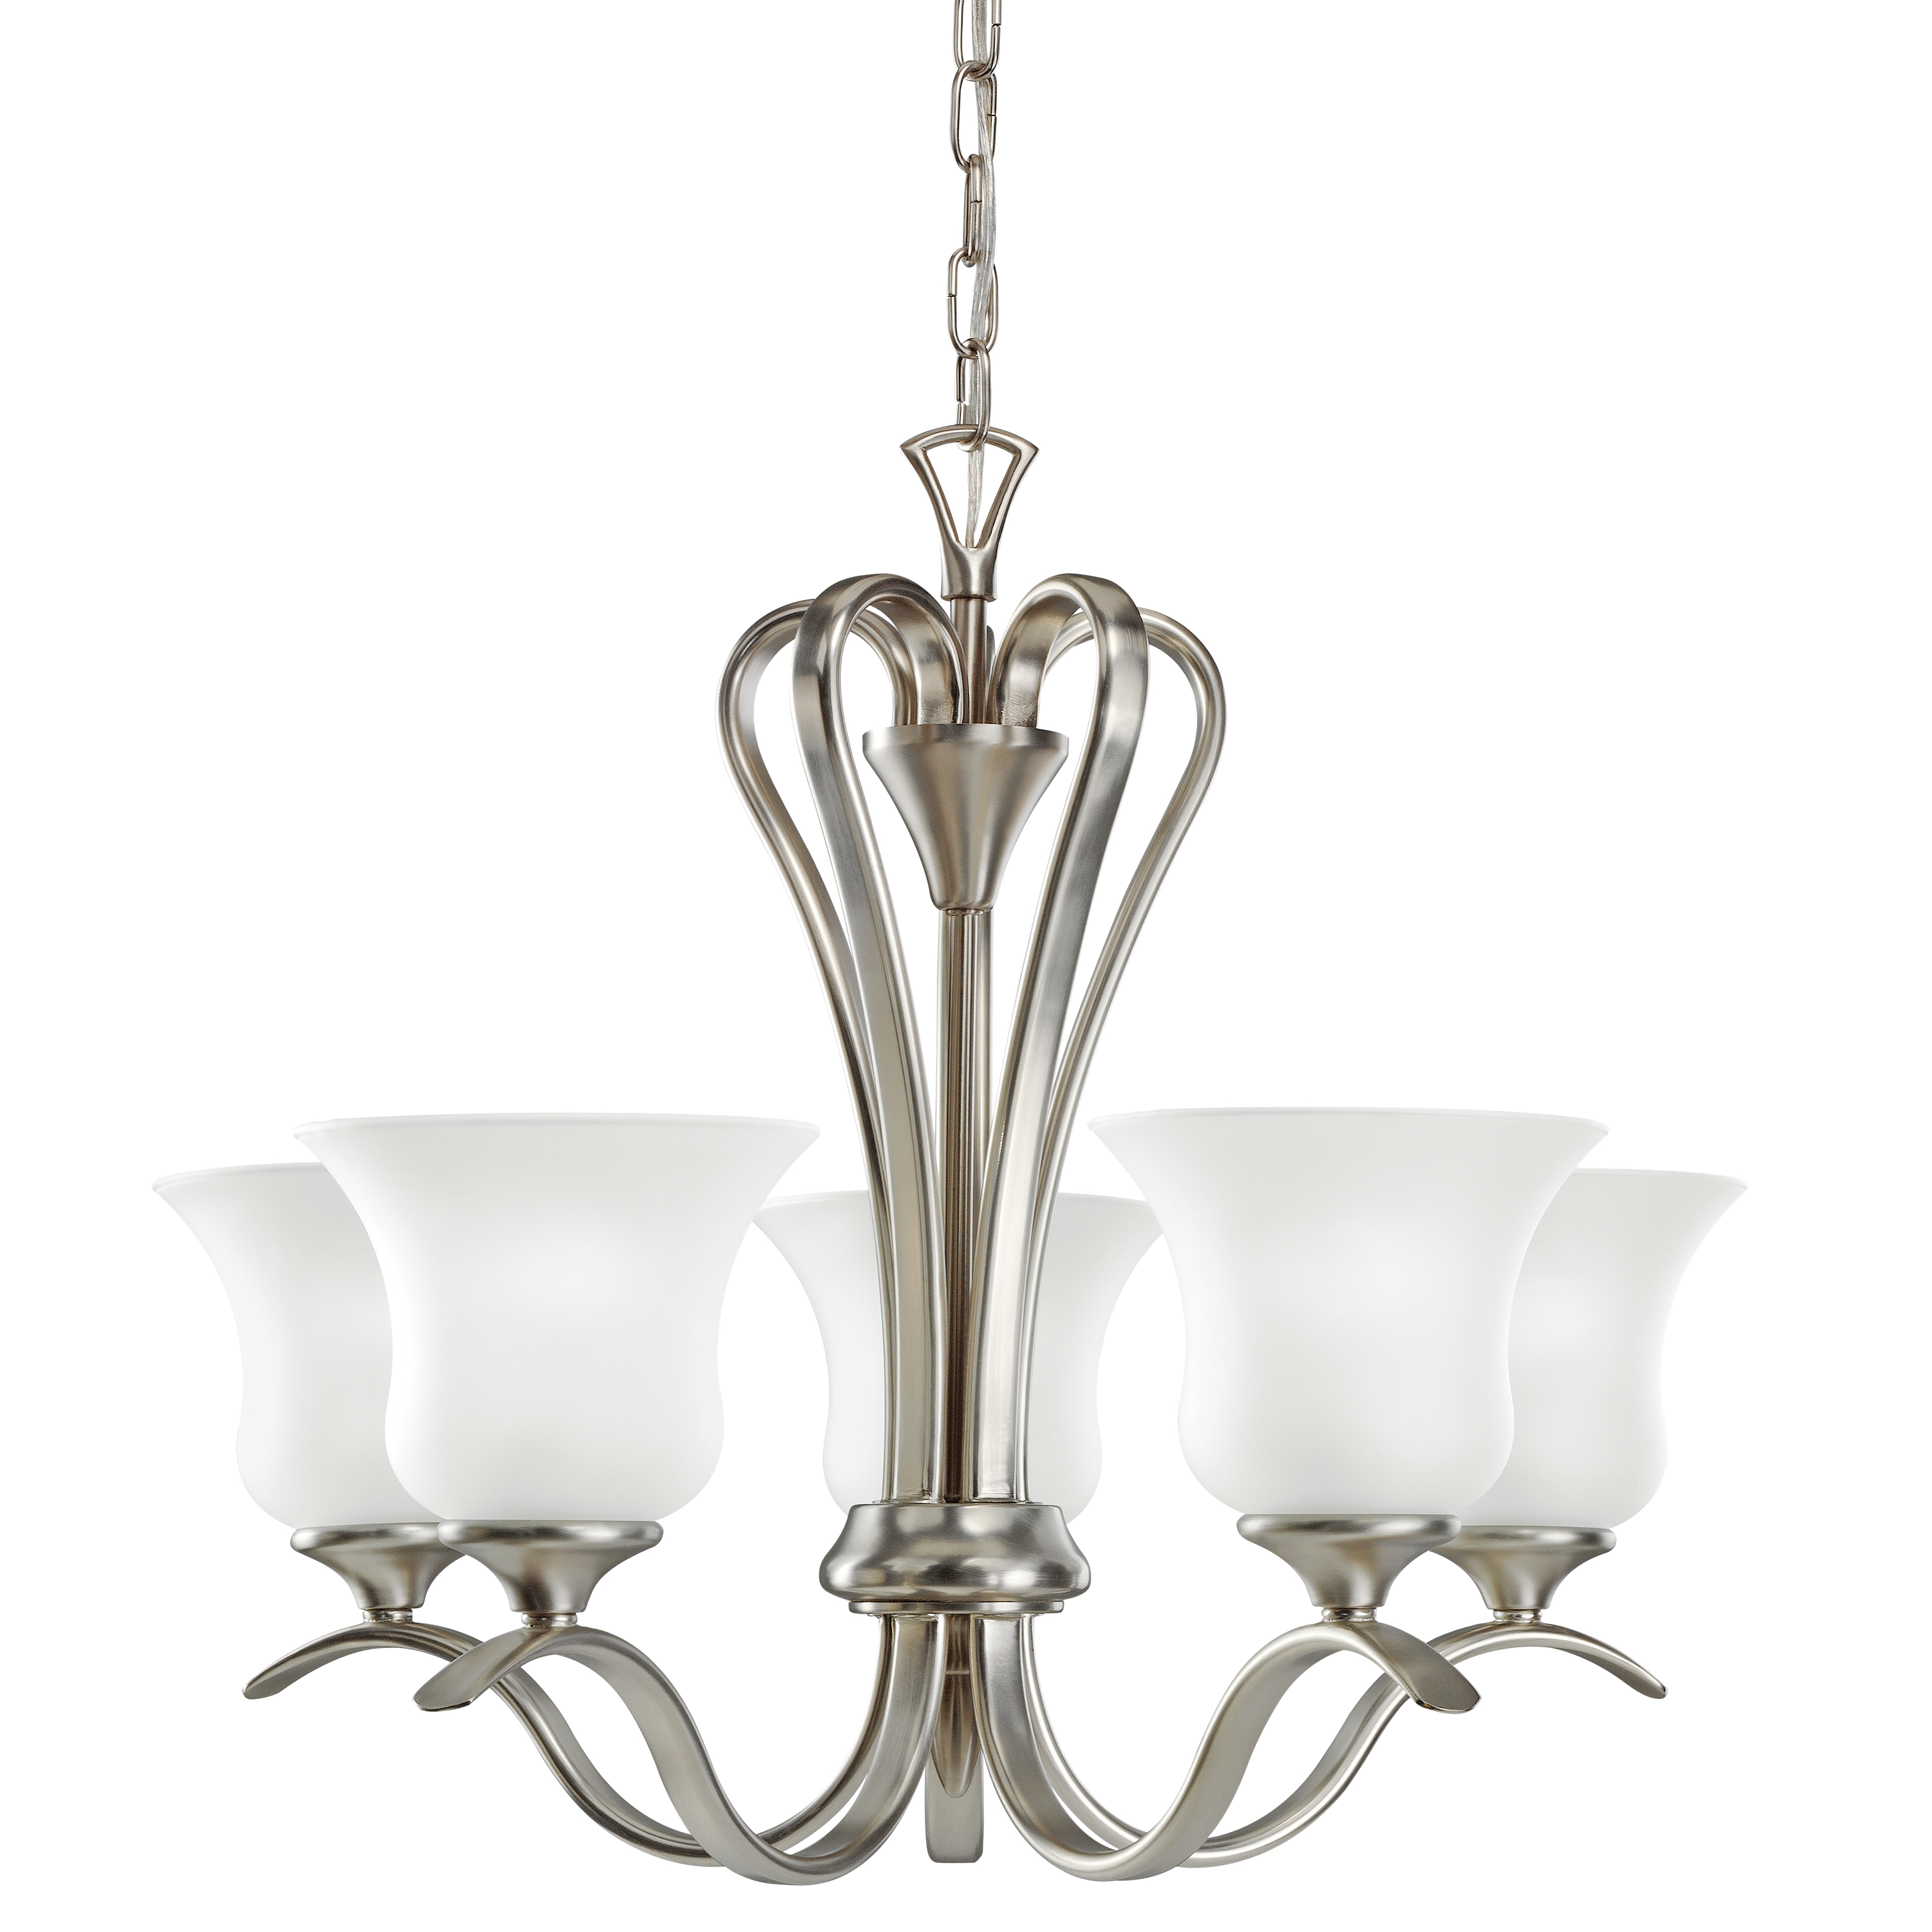 Kichler Wedgeport LED Chandelier with Satin Etched Shade - Brushed Nickel (2085NIL16)